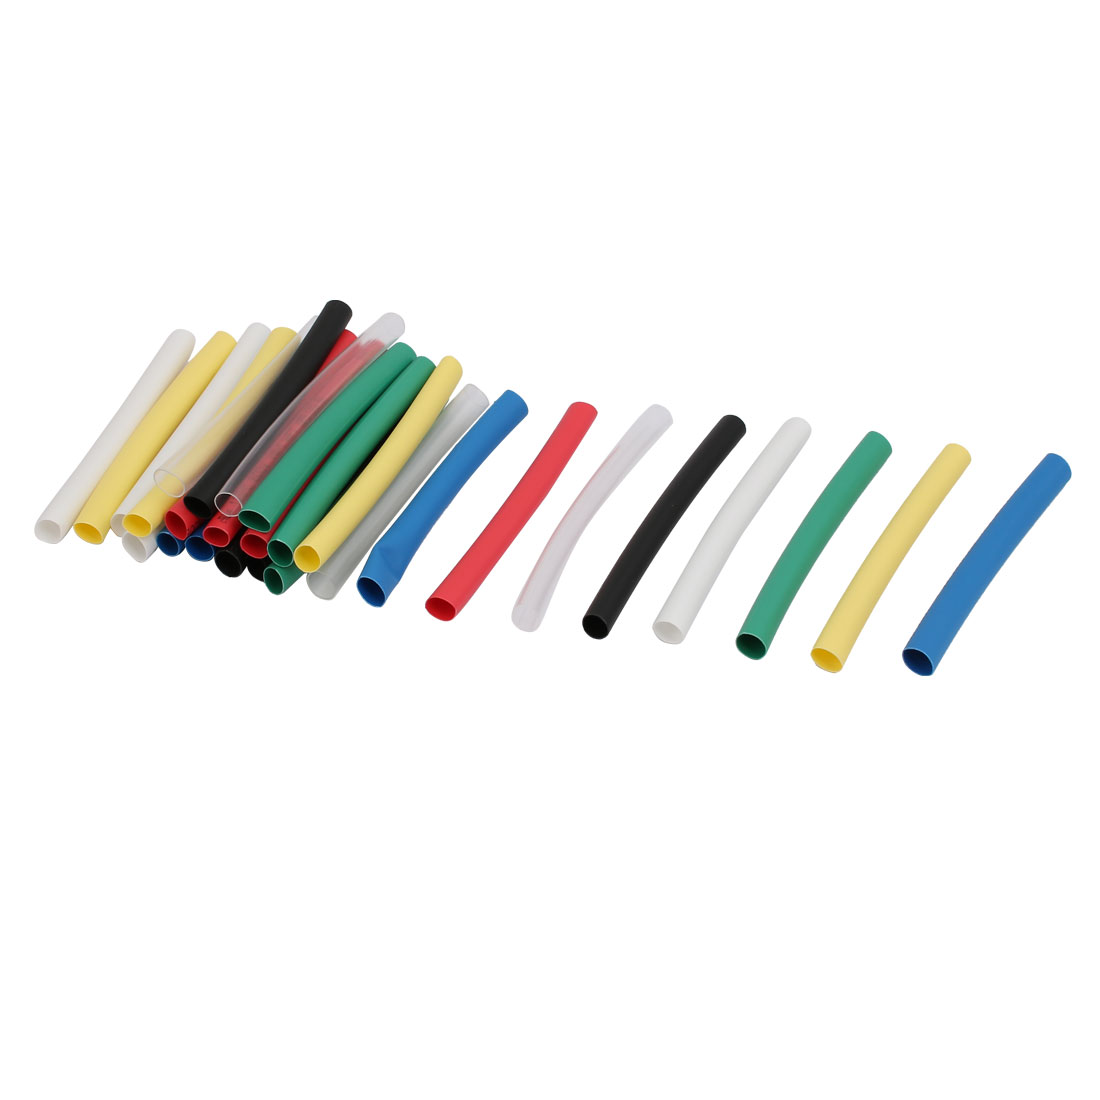 5mmx65mm Multi-Colors Insulated Heat Shrink Tube Sleeving Wrap Wire Kits 28pcs